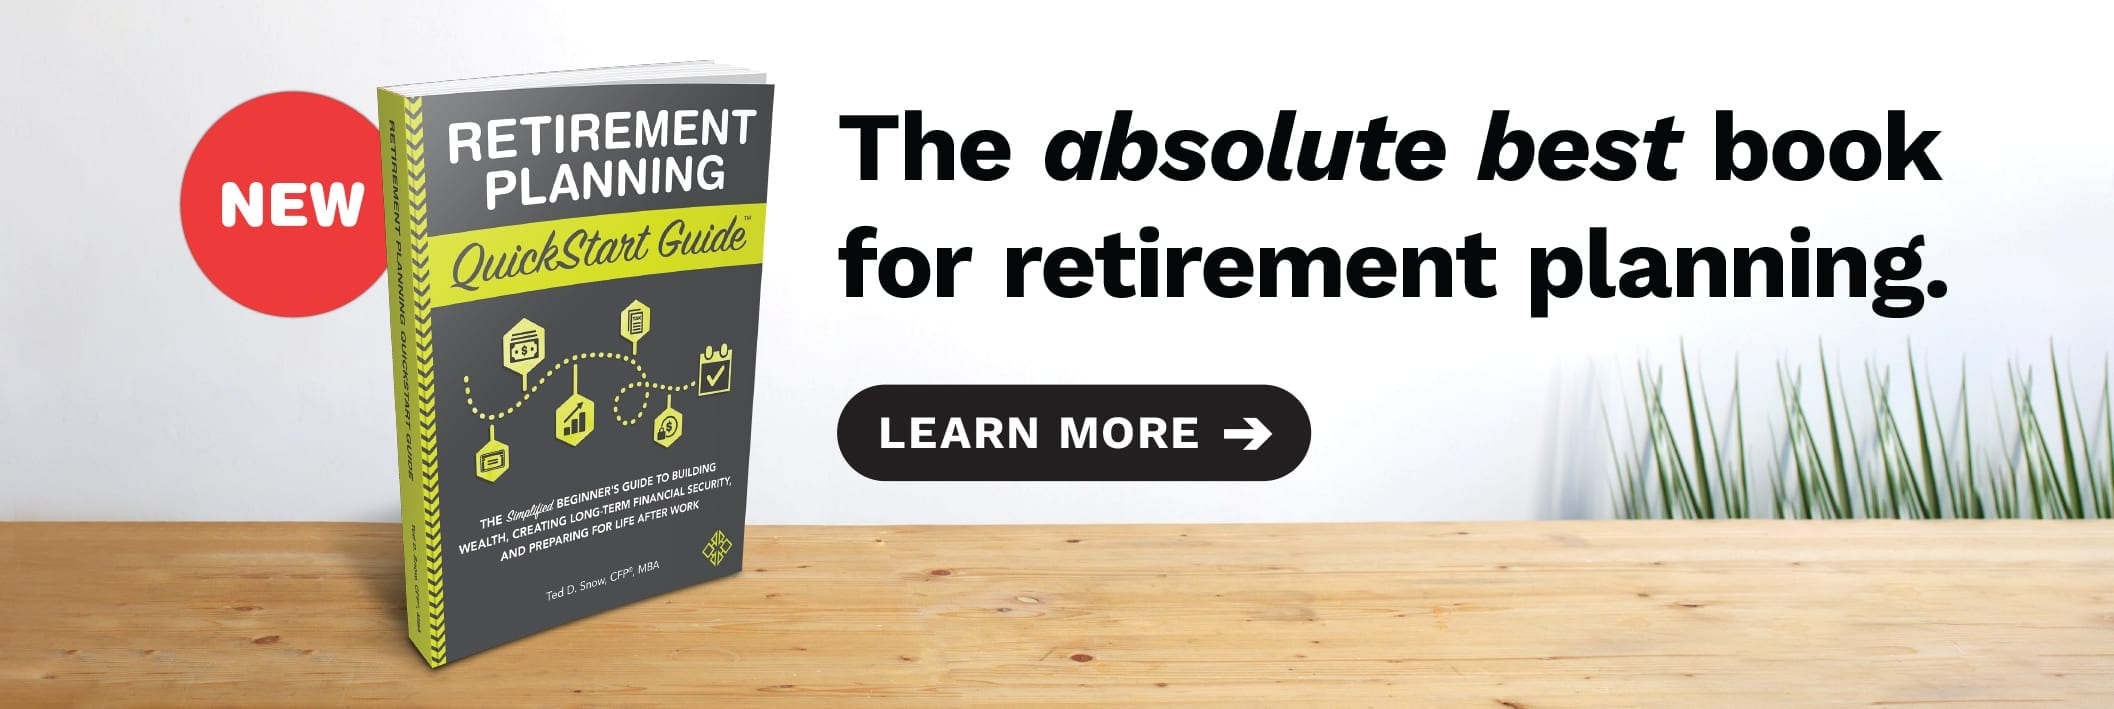 New Release! Retirement Planning QuickStart Guide is the best new book for anyone who wants to take control of their financial future.